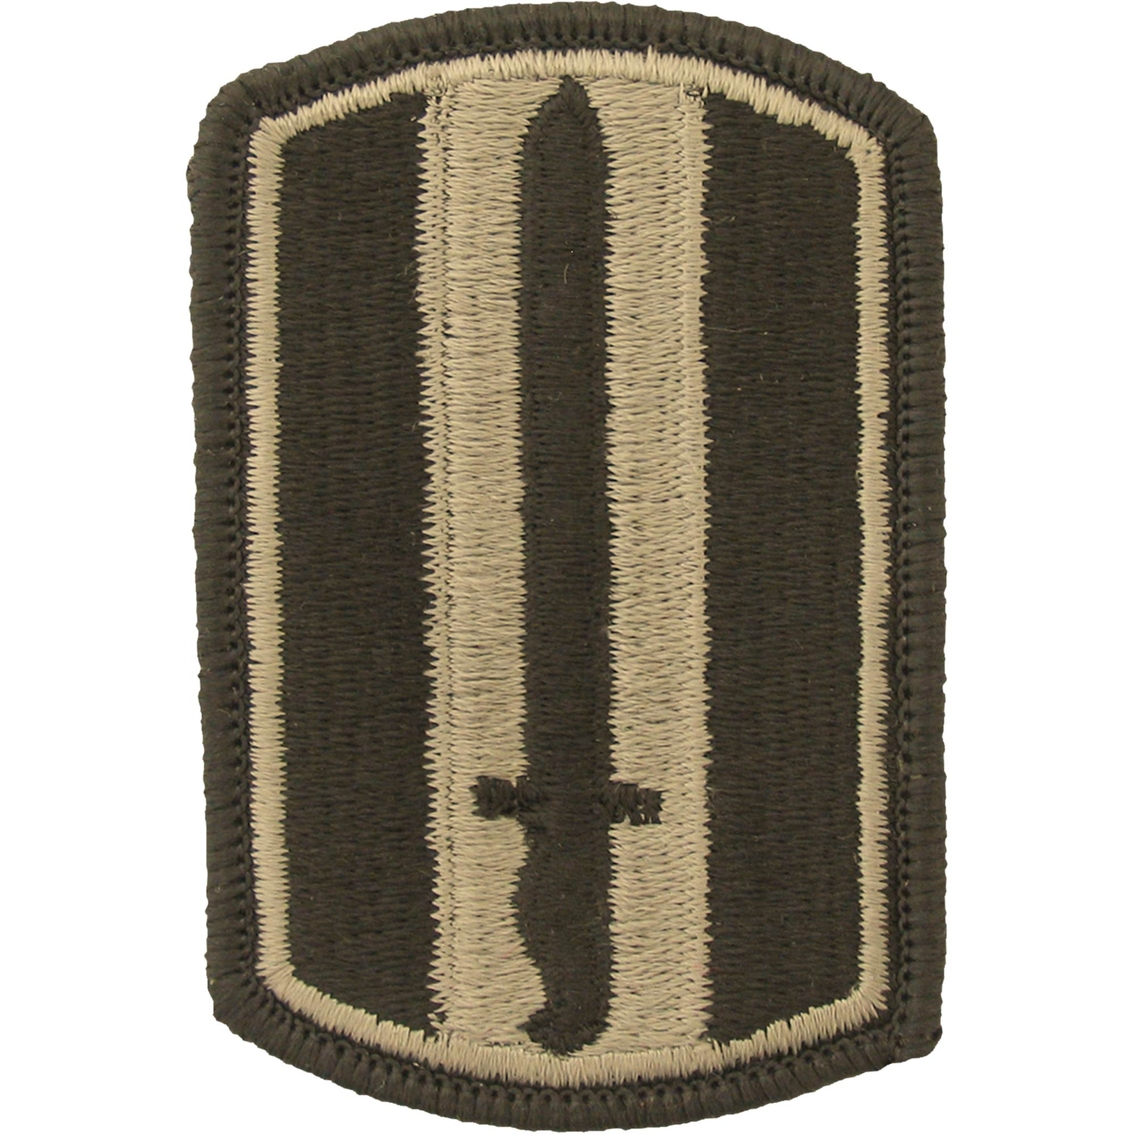 Army Unit Patch 193rd Infantry Brigade (ocp)   Ocp Unit Patches ...